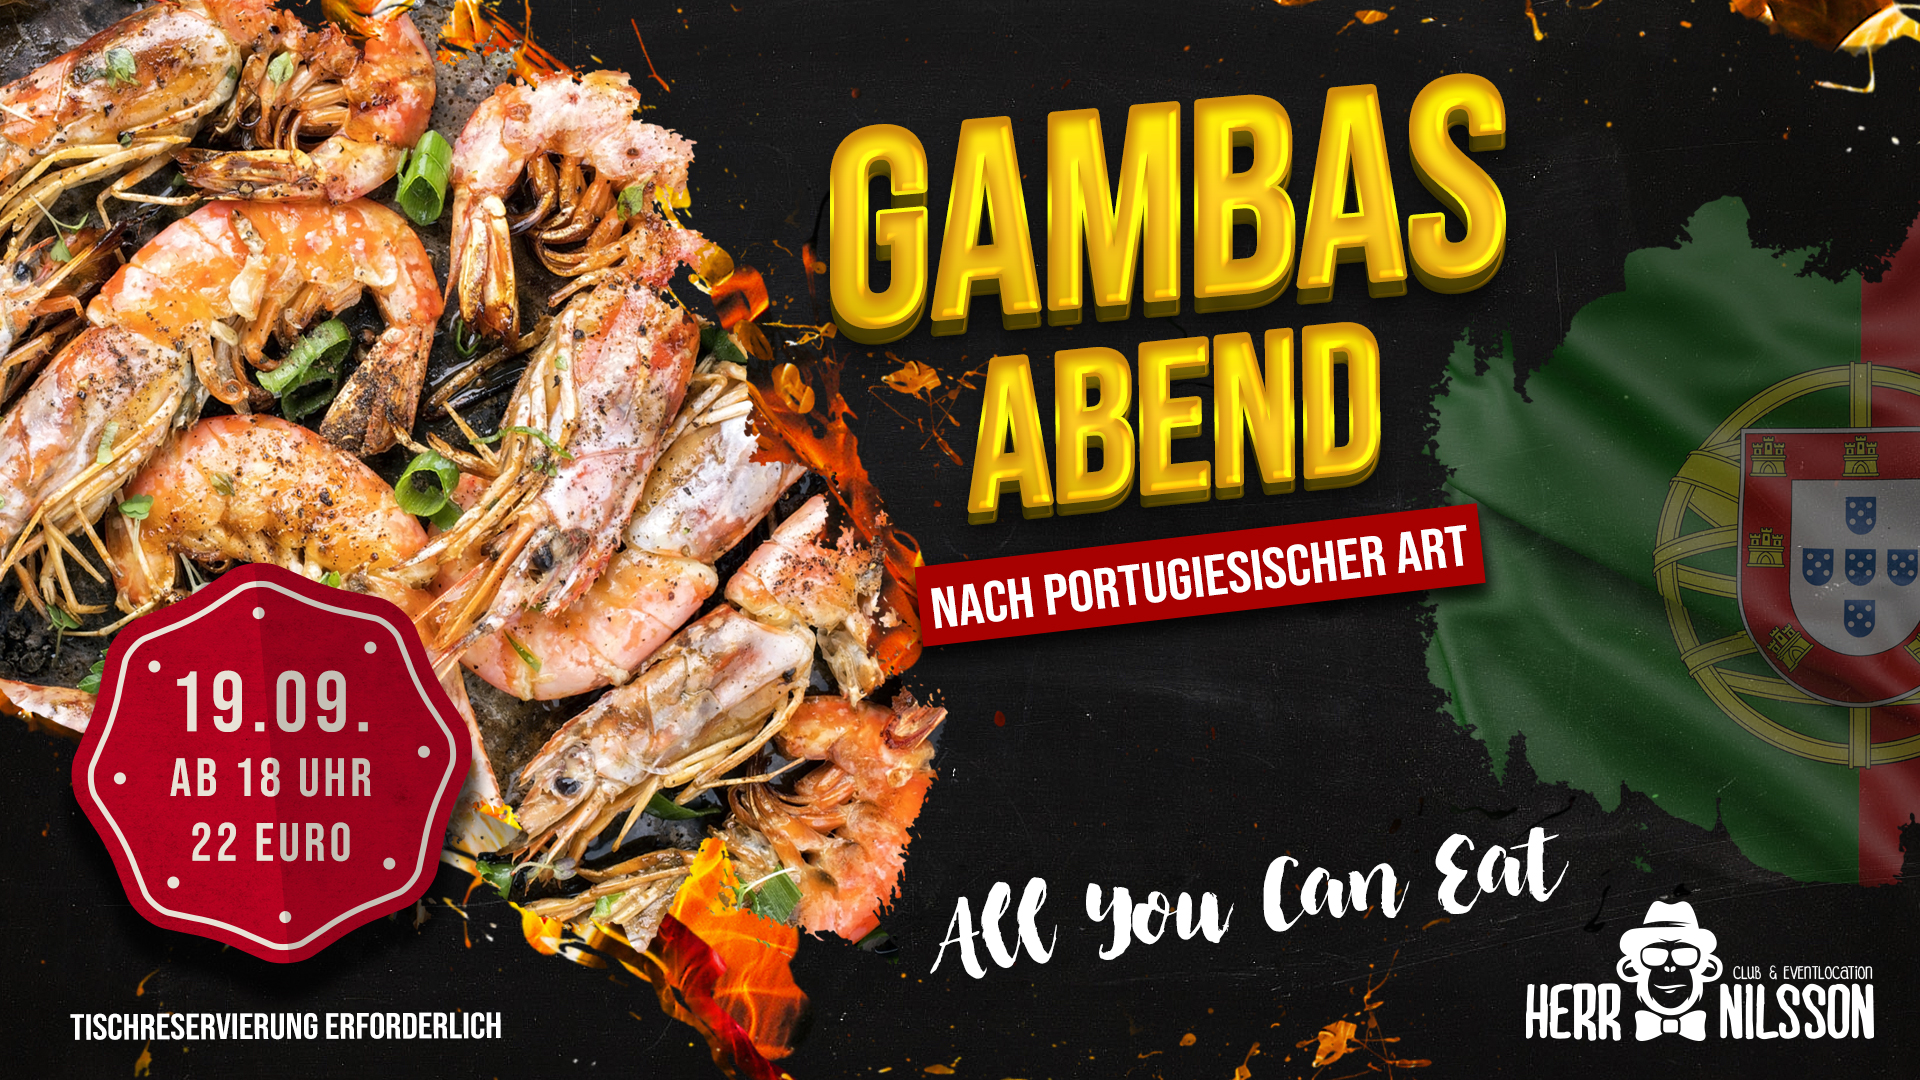 Gambas Abend ✘ All you can eat